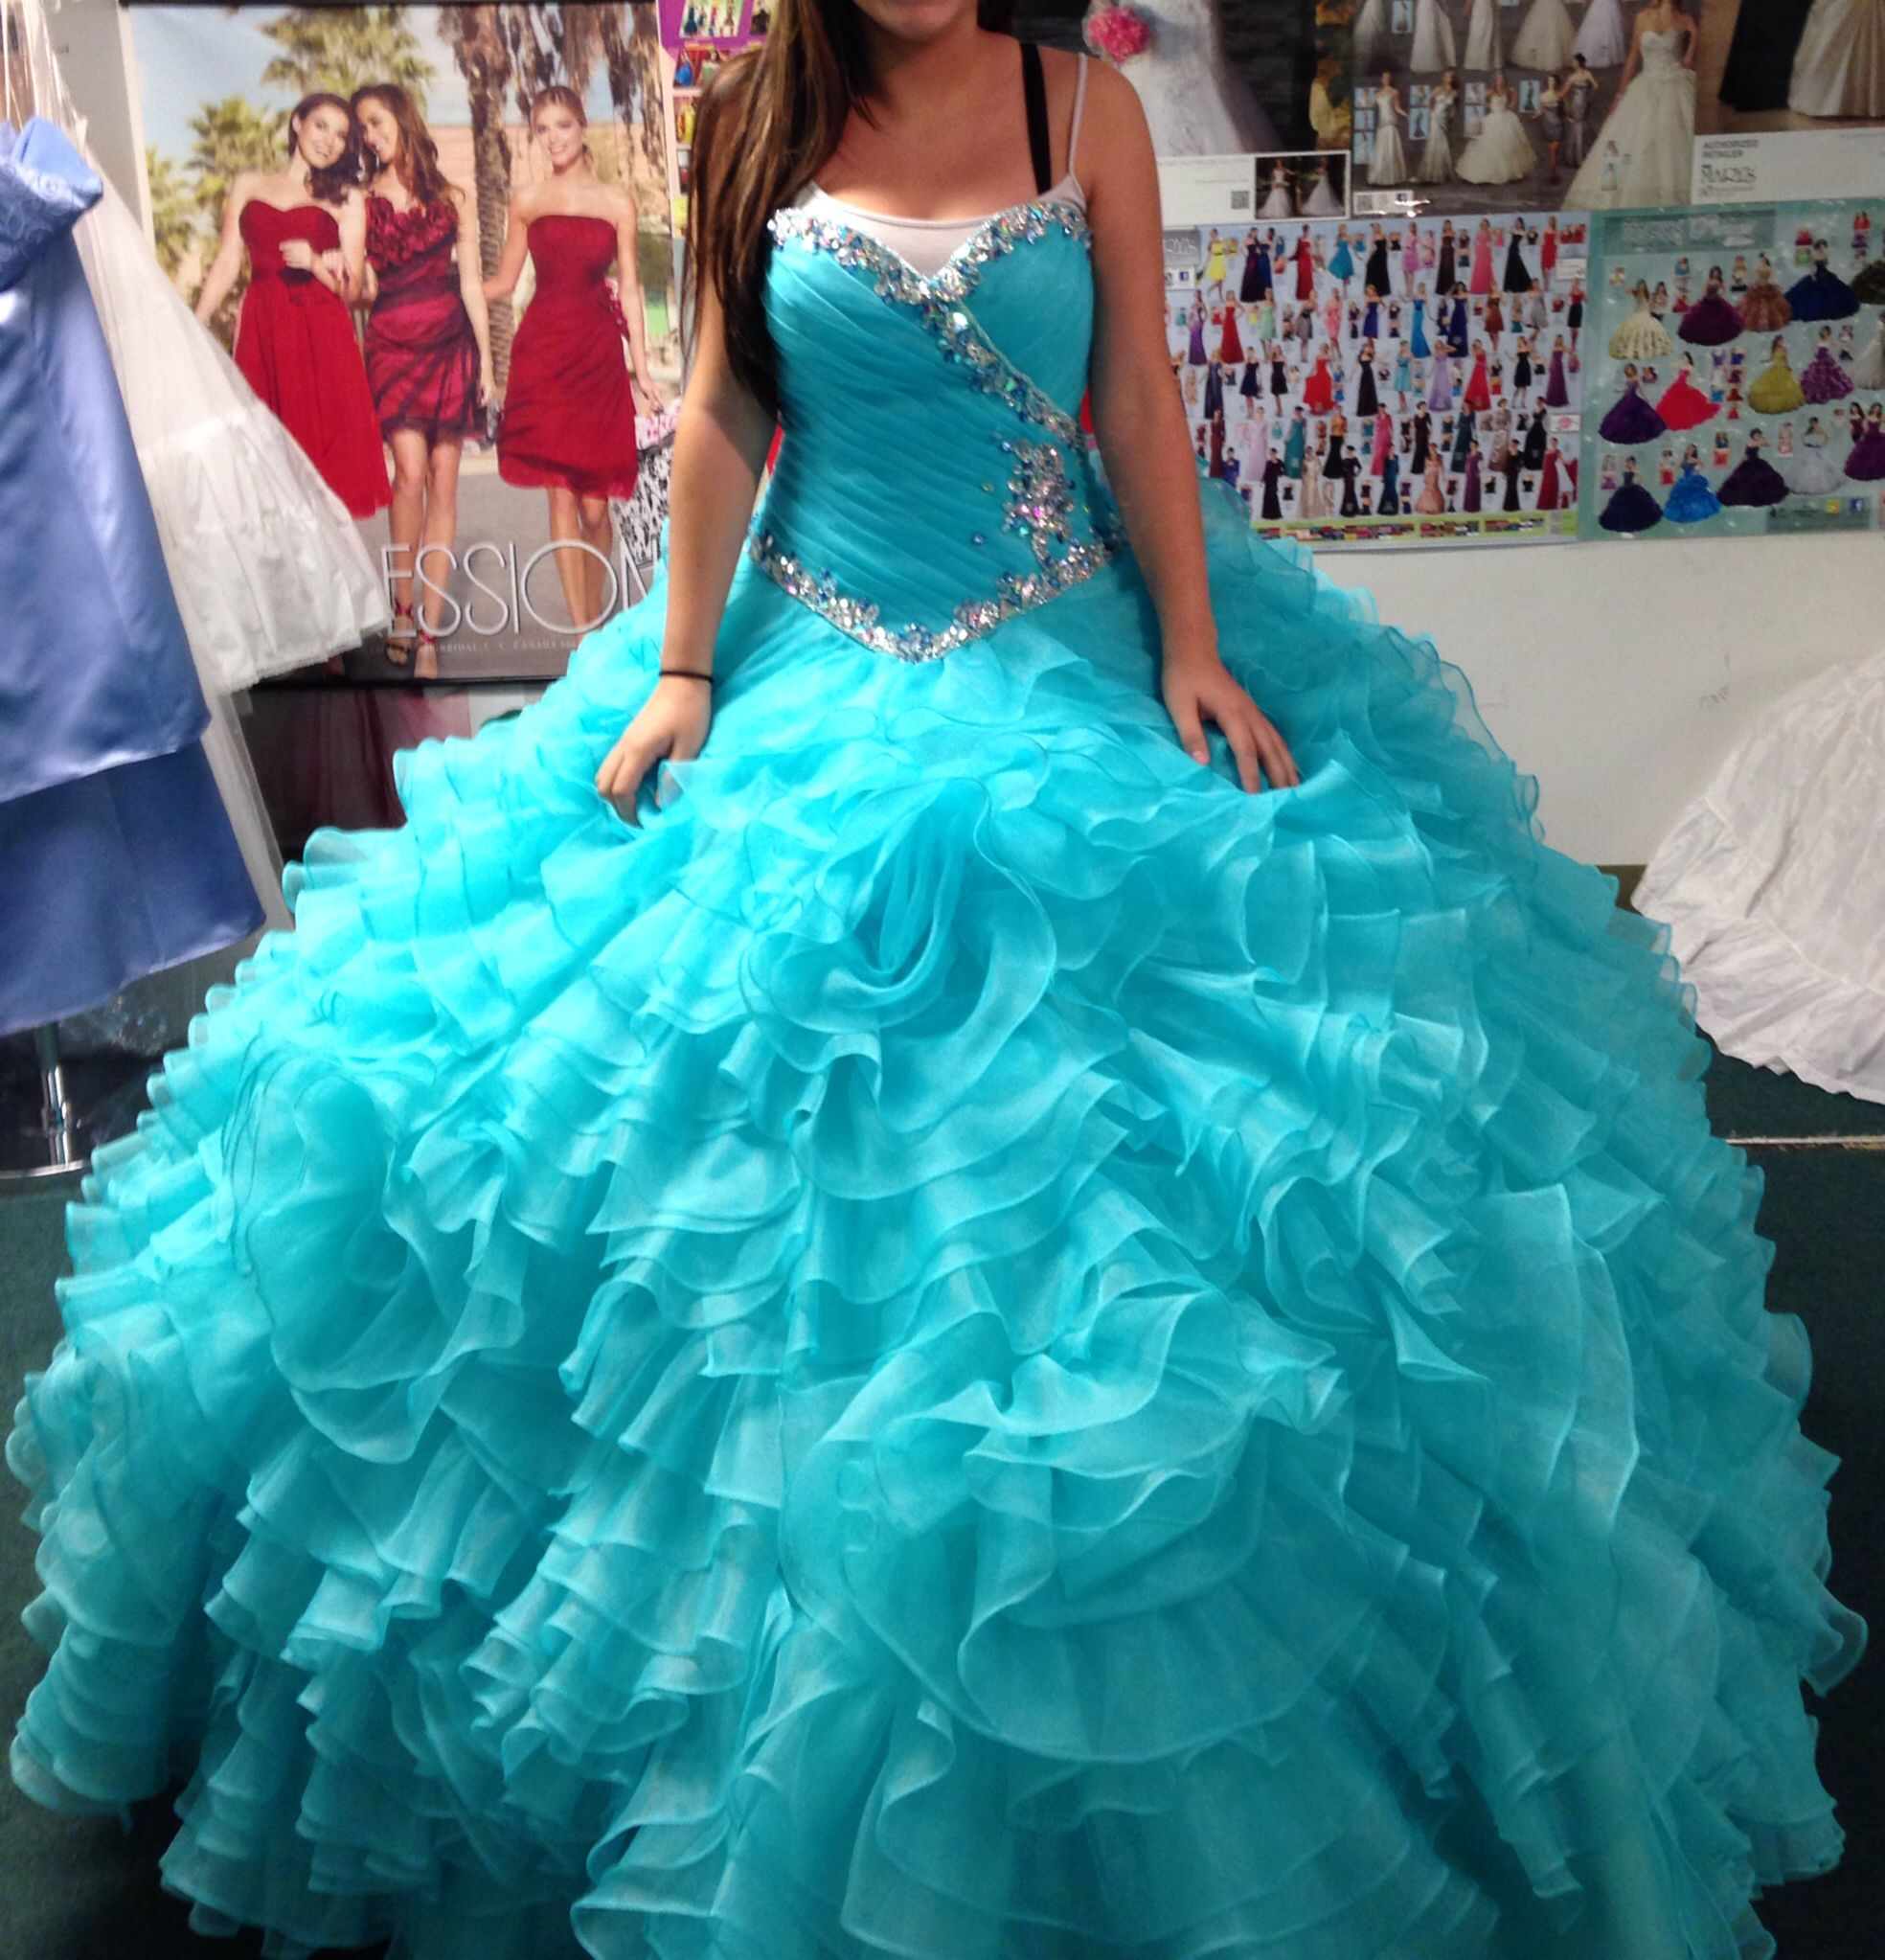 Aqua Quinceañera Dress ❤ From House of wedding In Chicago ...